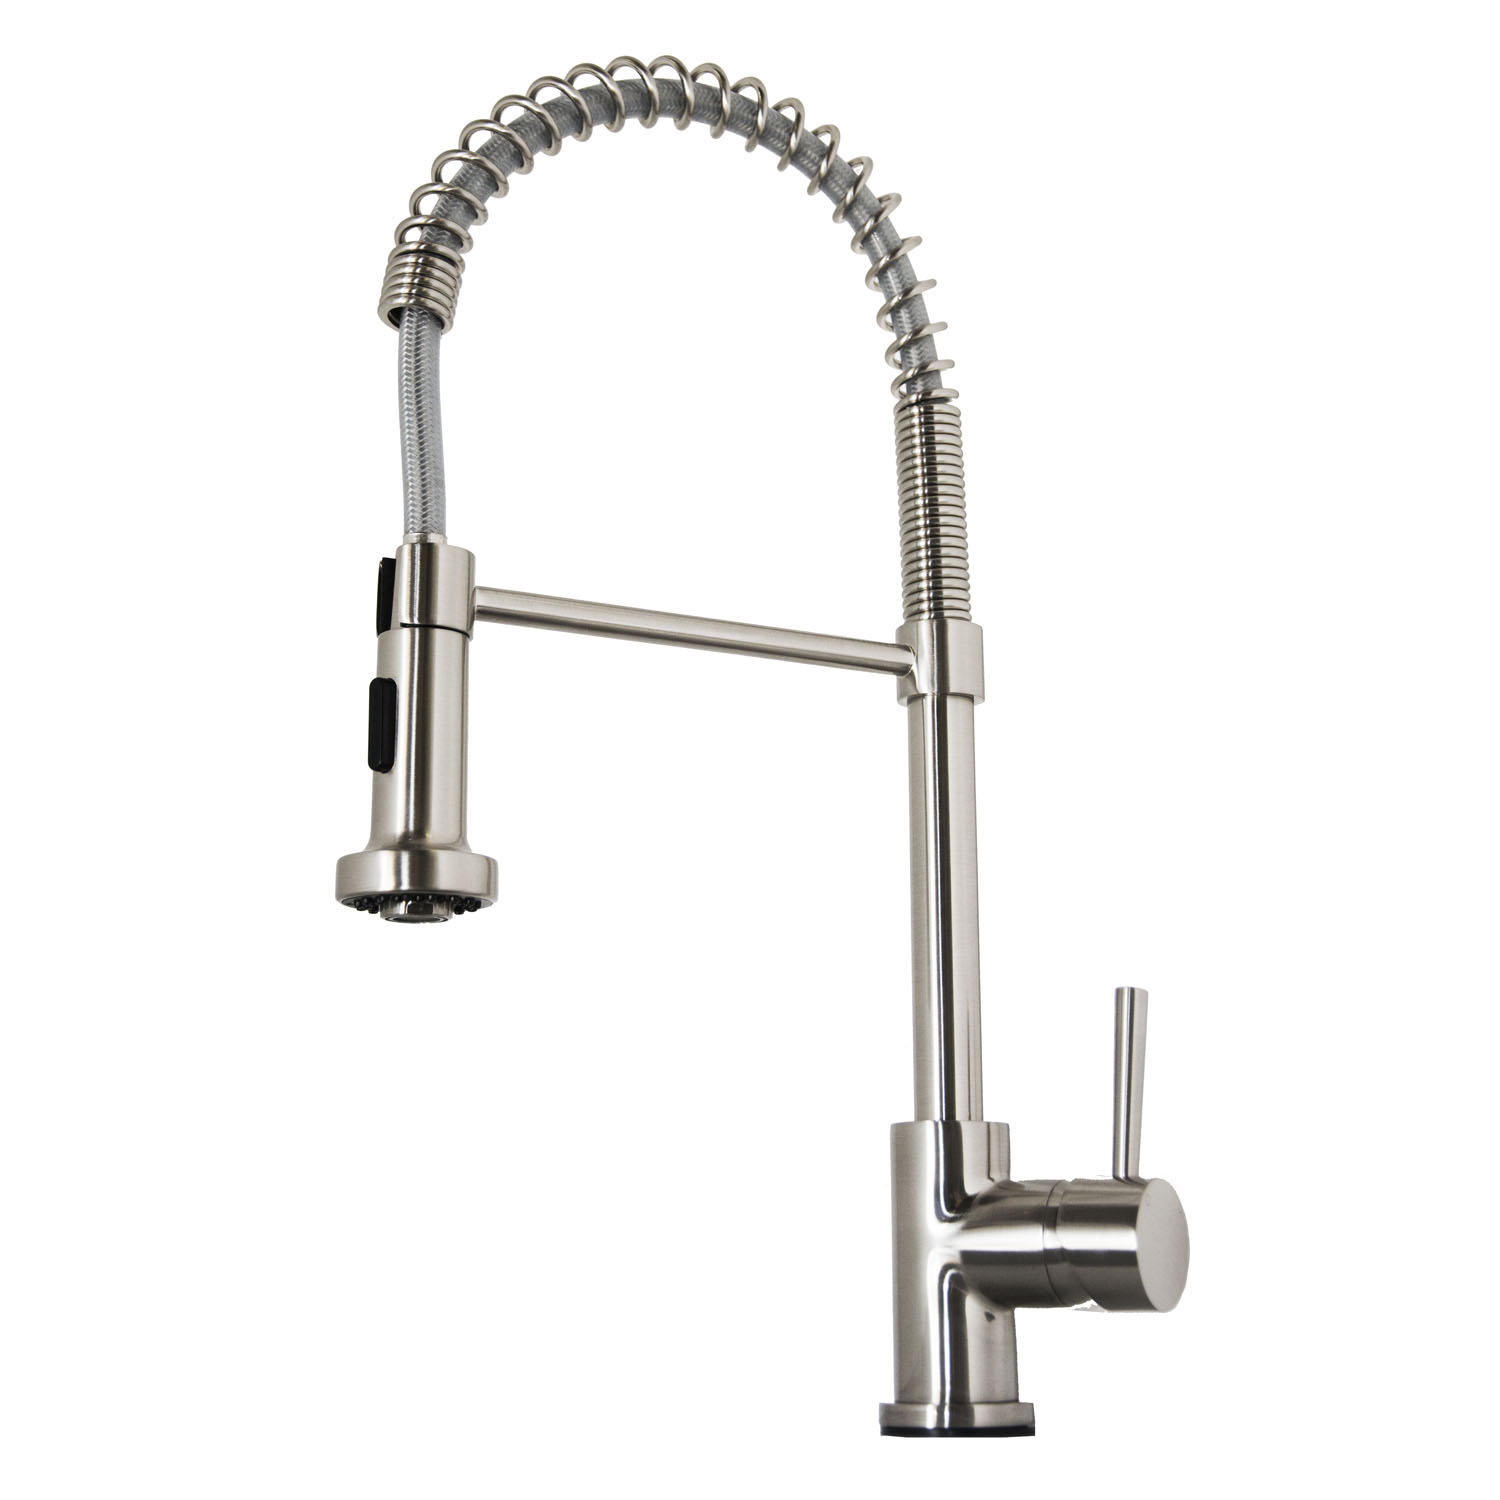 Triton 1004 Single Hole Kitchen Faucet - PSK-1004 - Kitchen Faucets - Virtu  USA